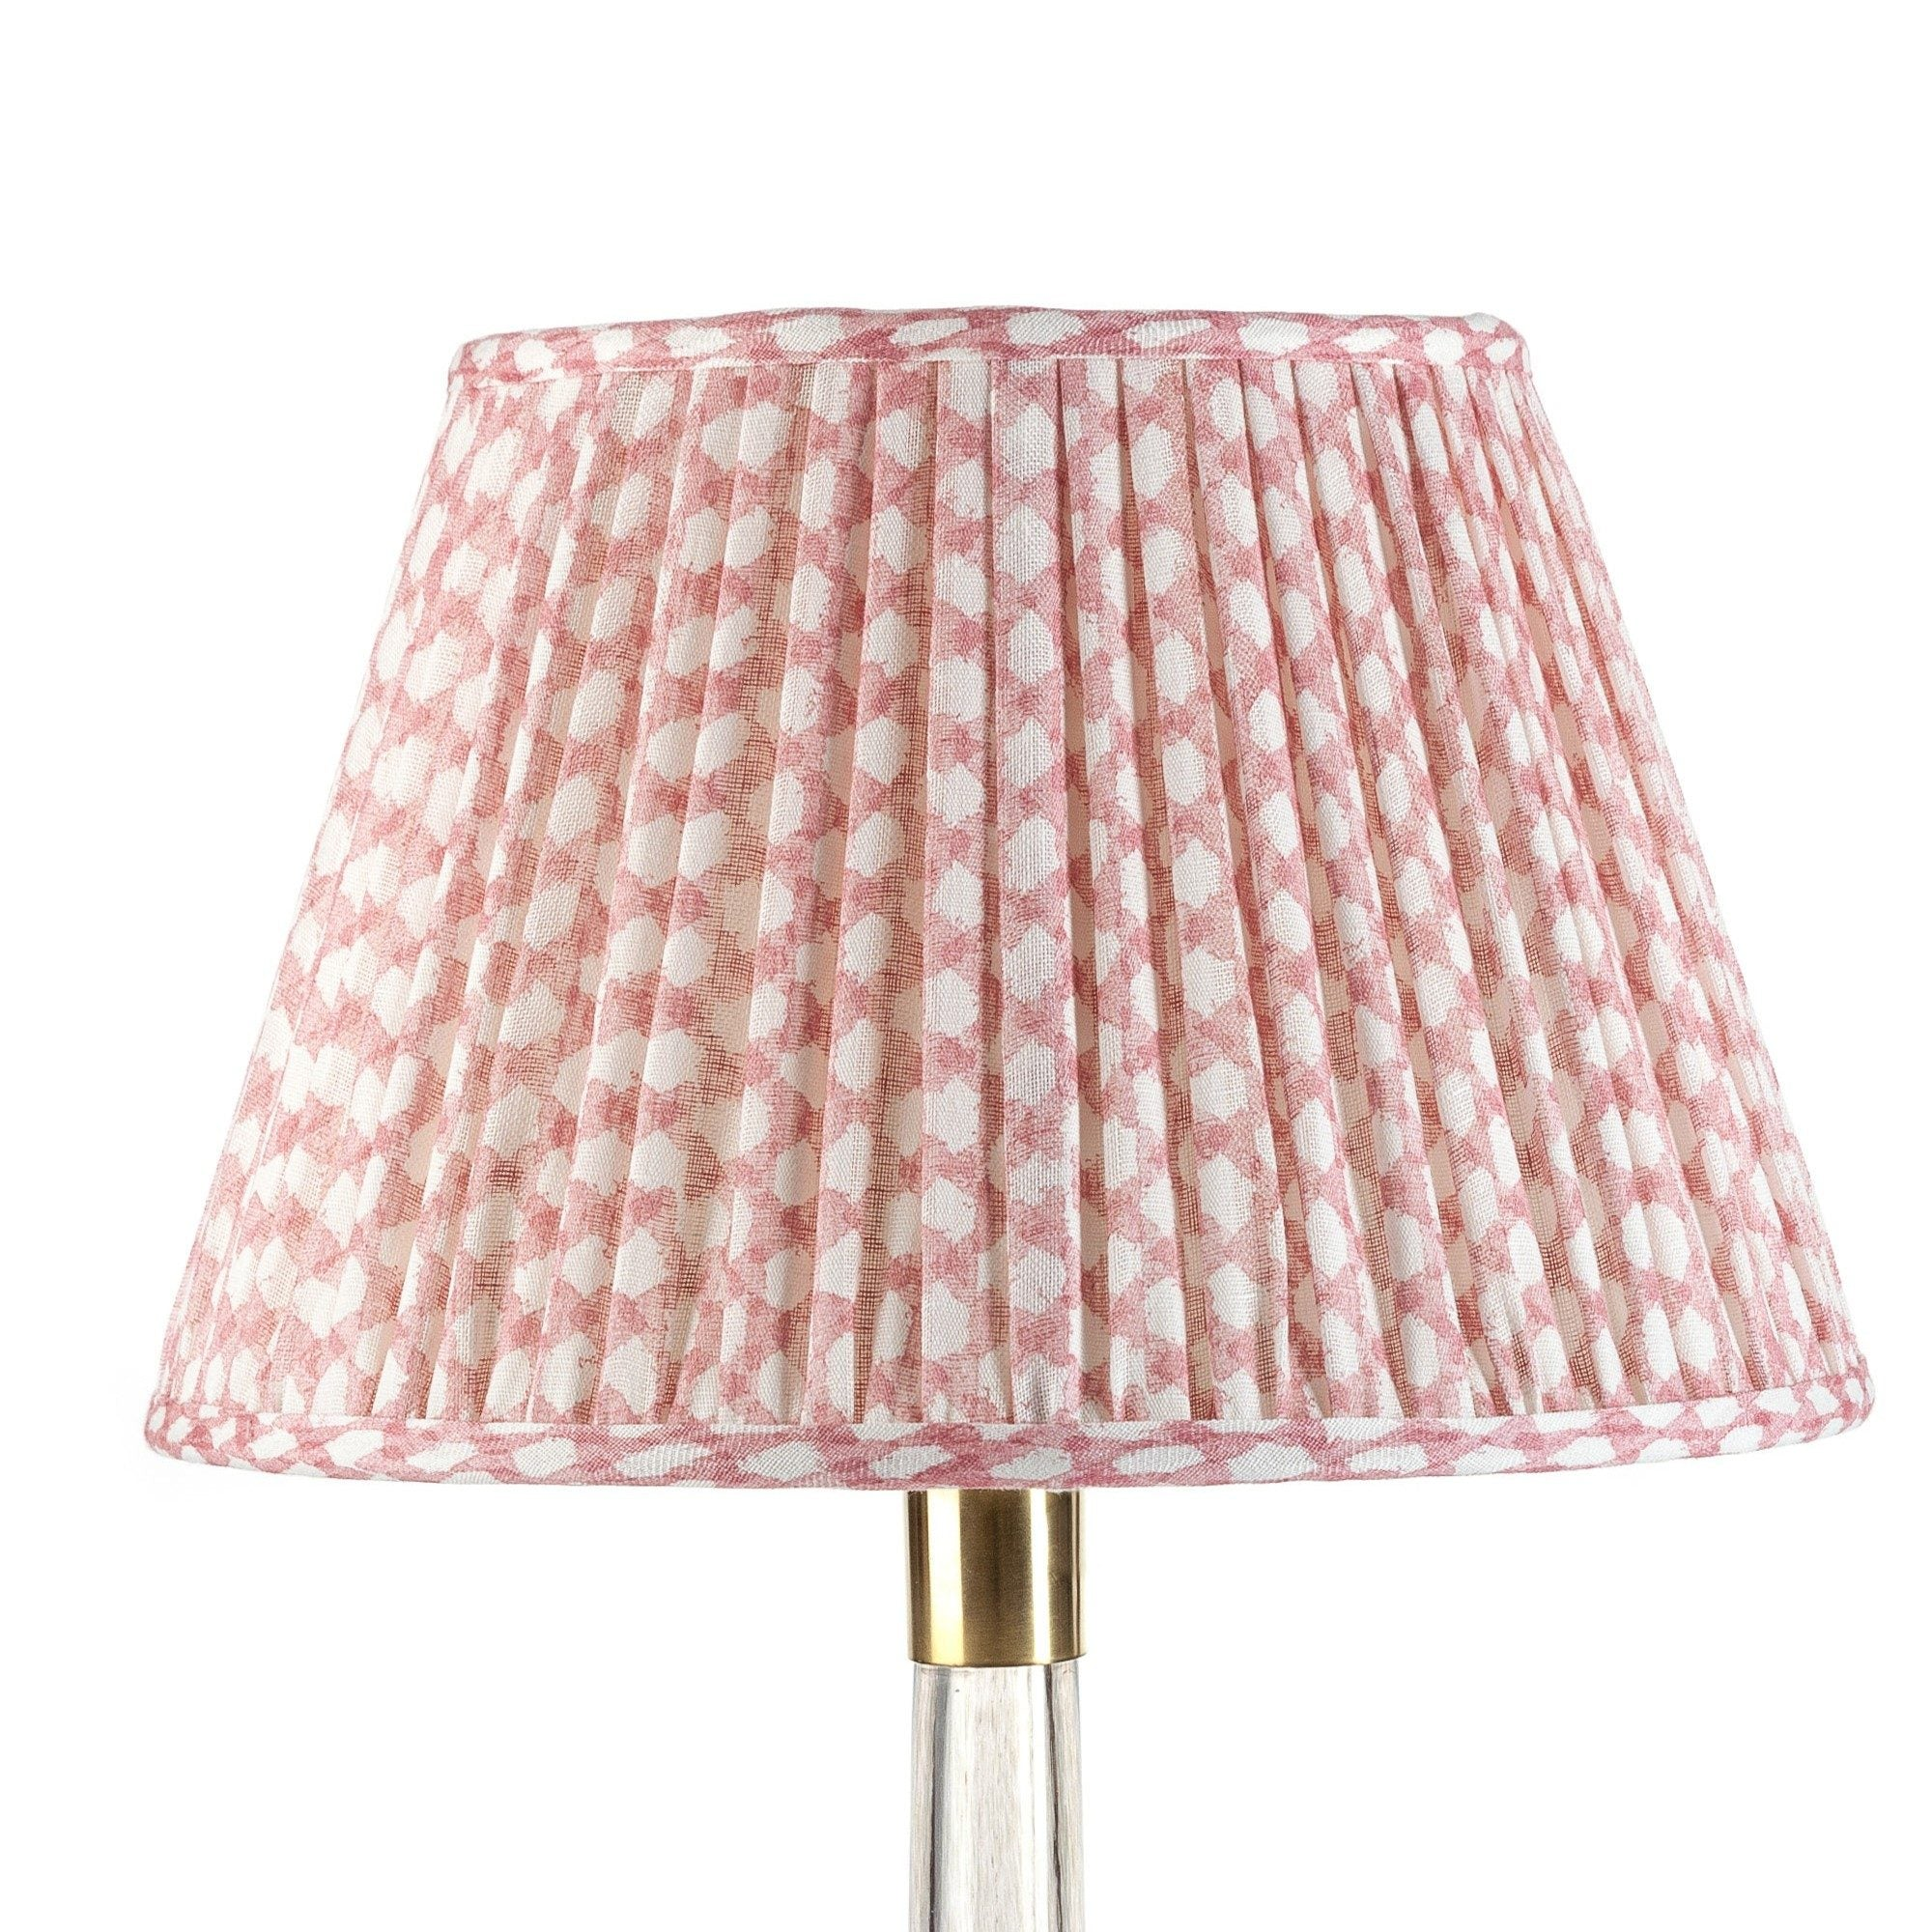 Fermoie Lampshade in Pink Wicker